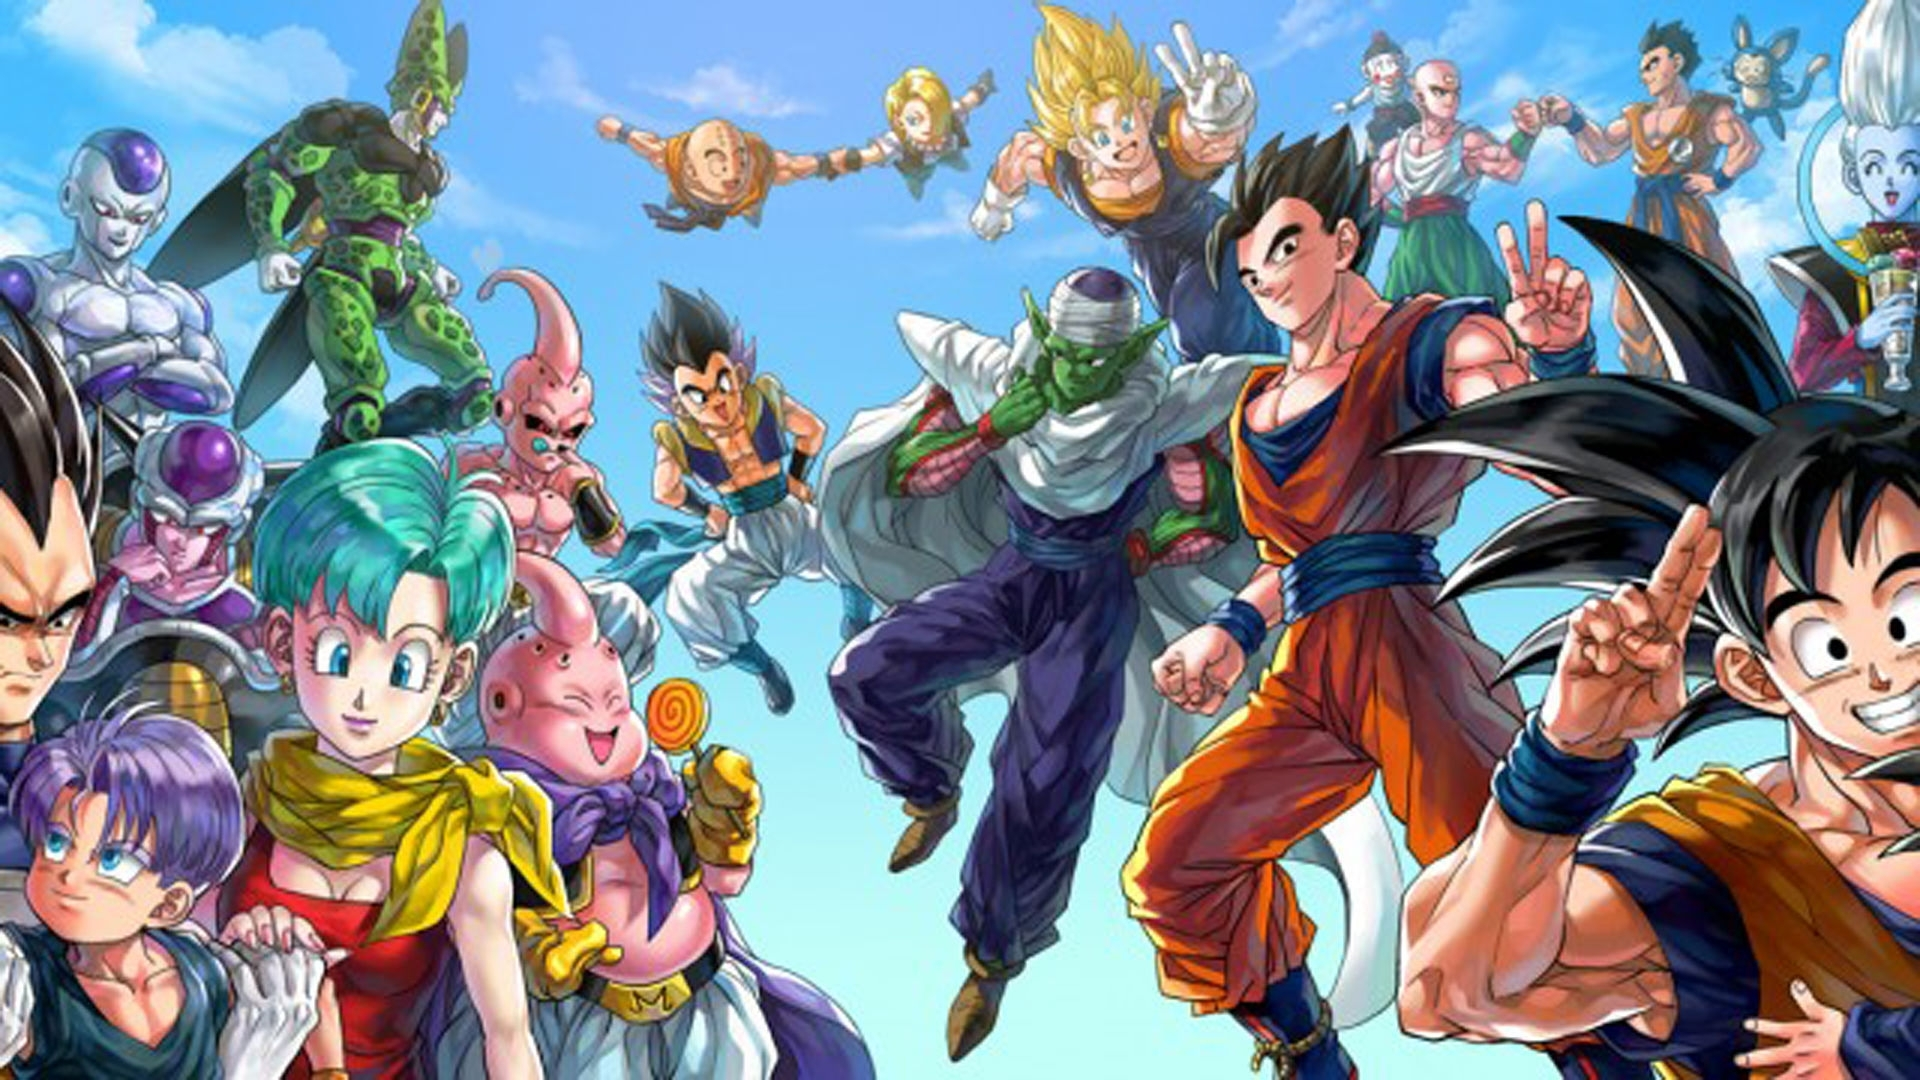 dragon ball super wallpapers, dragon ball super wallpapers and